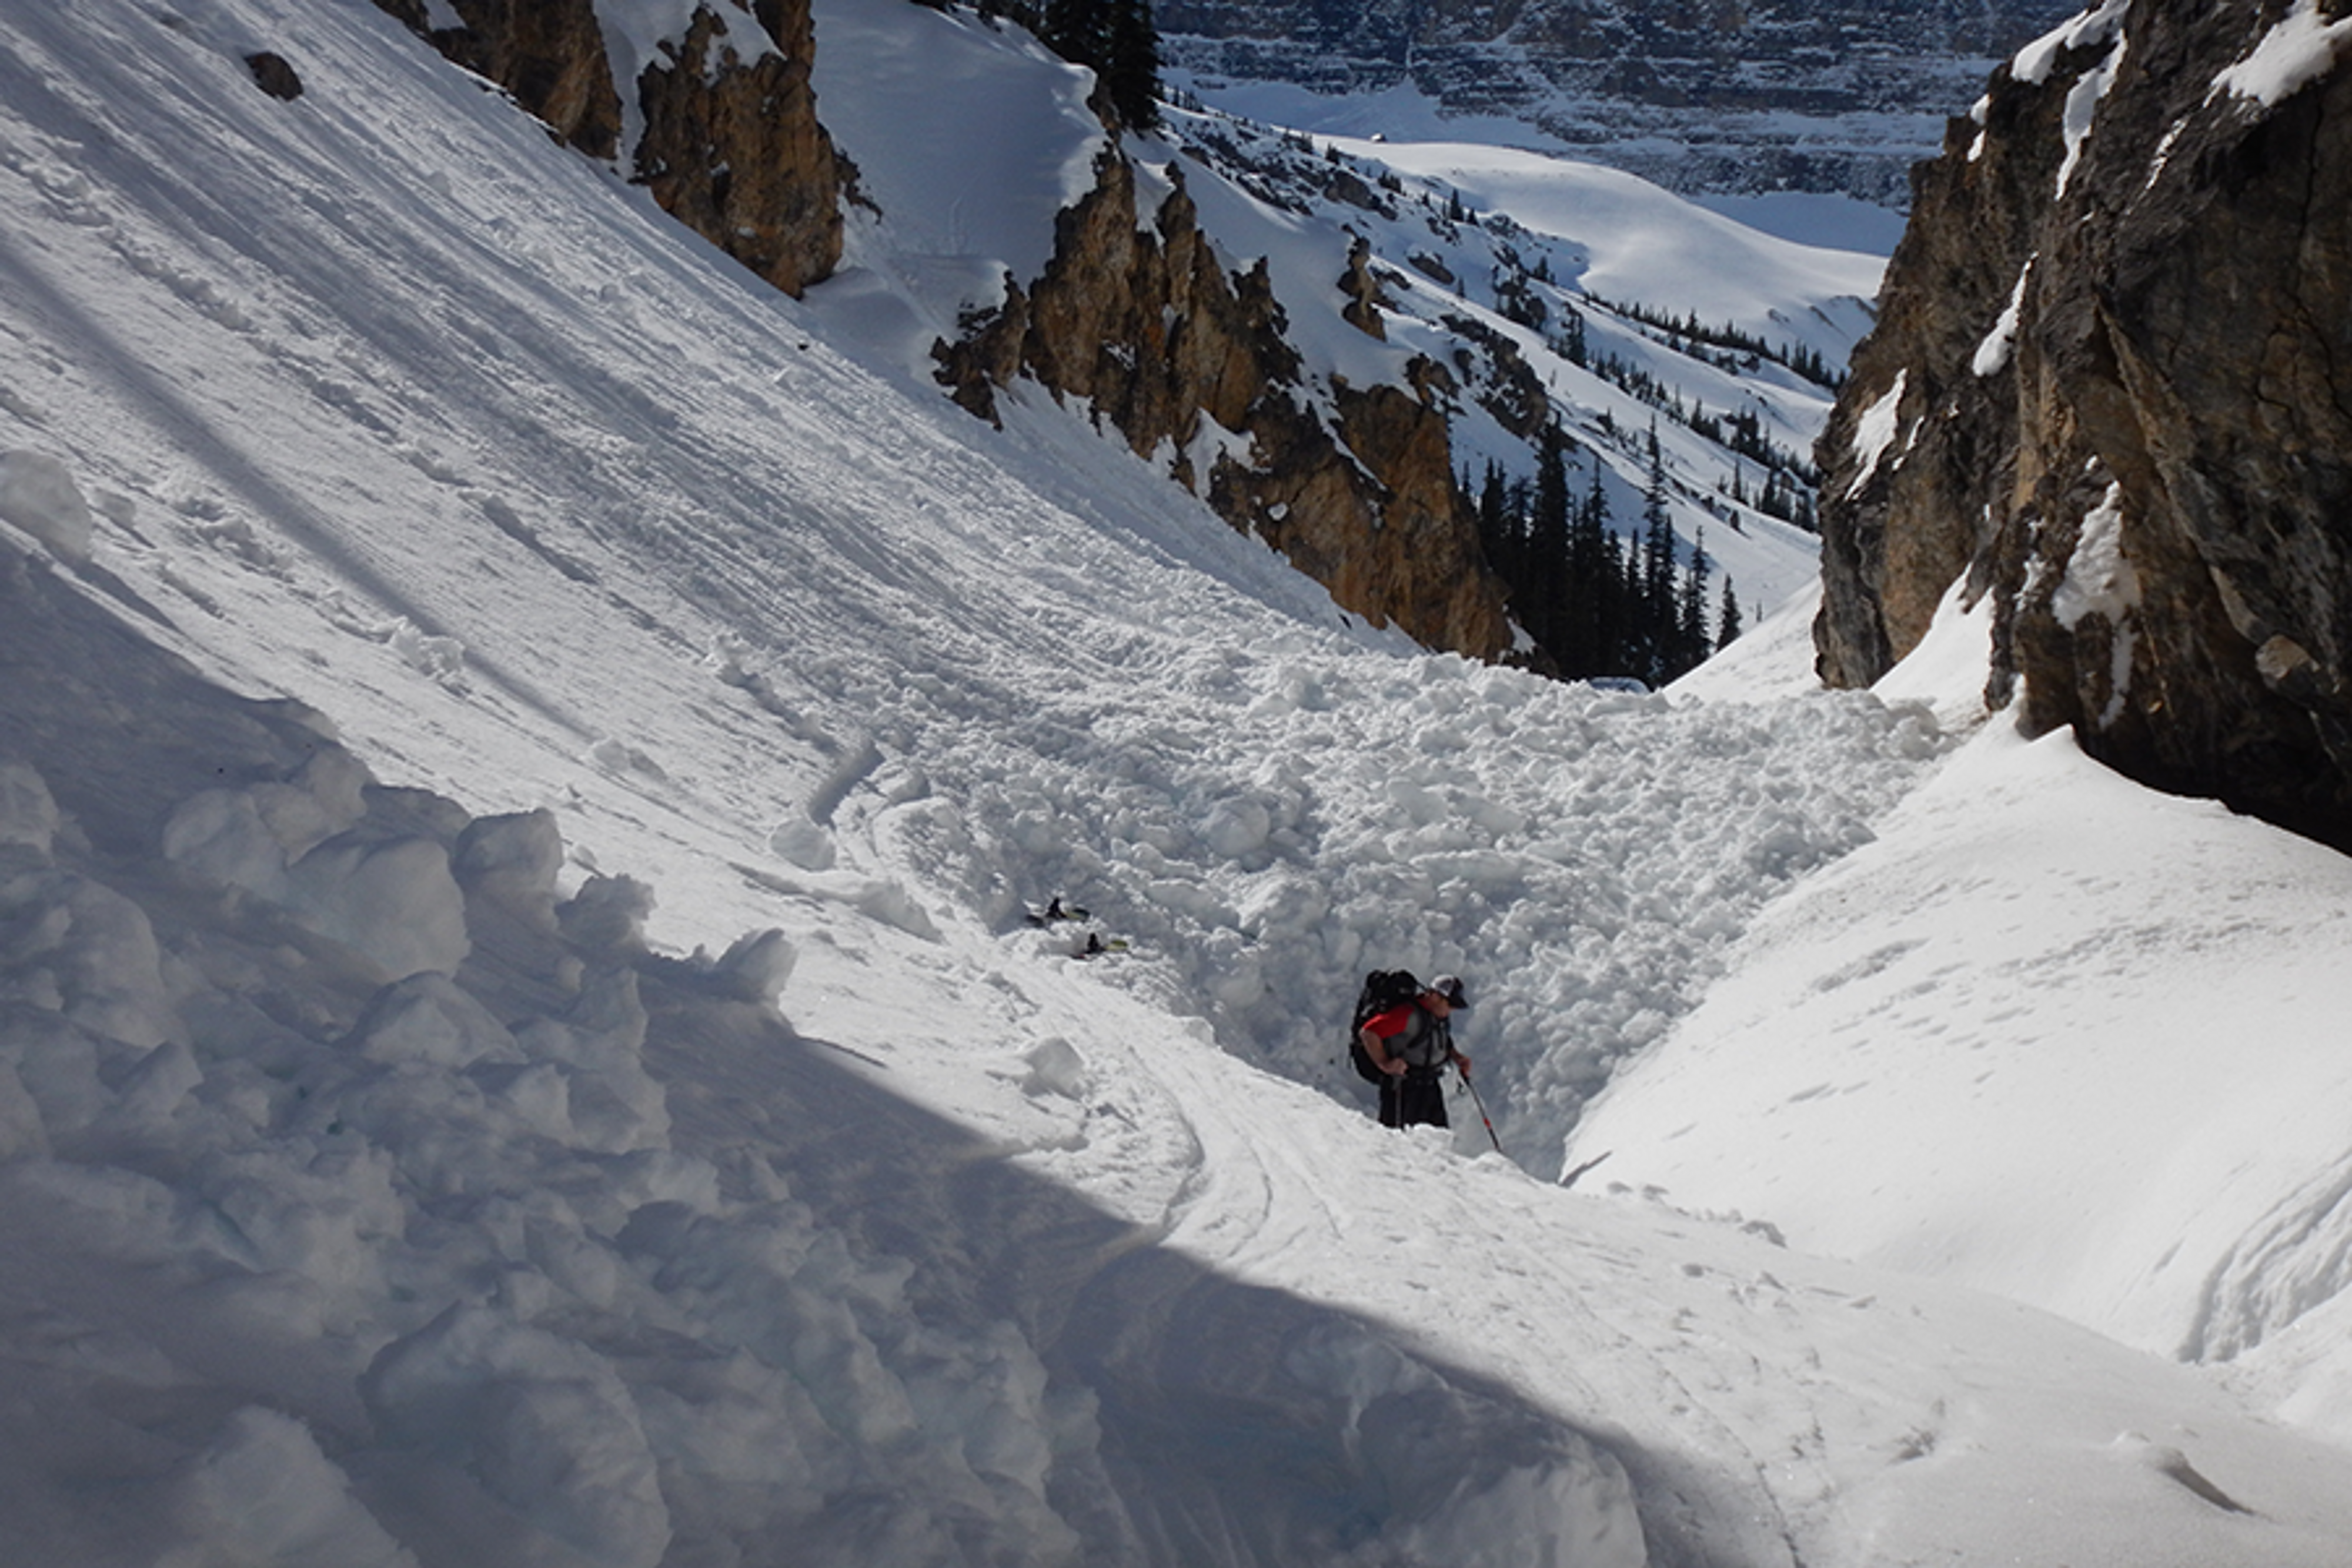 This is a classic terrain trap, where an avalanche from above piled up deeply in the gully. It would have resulted in a full burial for anyone caught in its path.